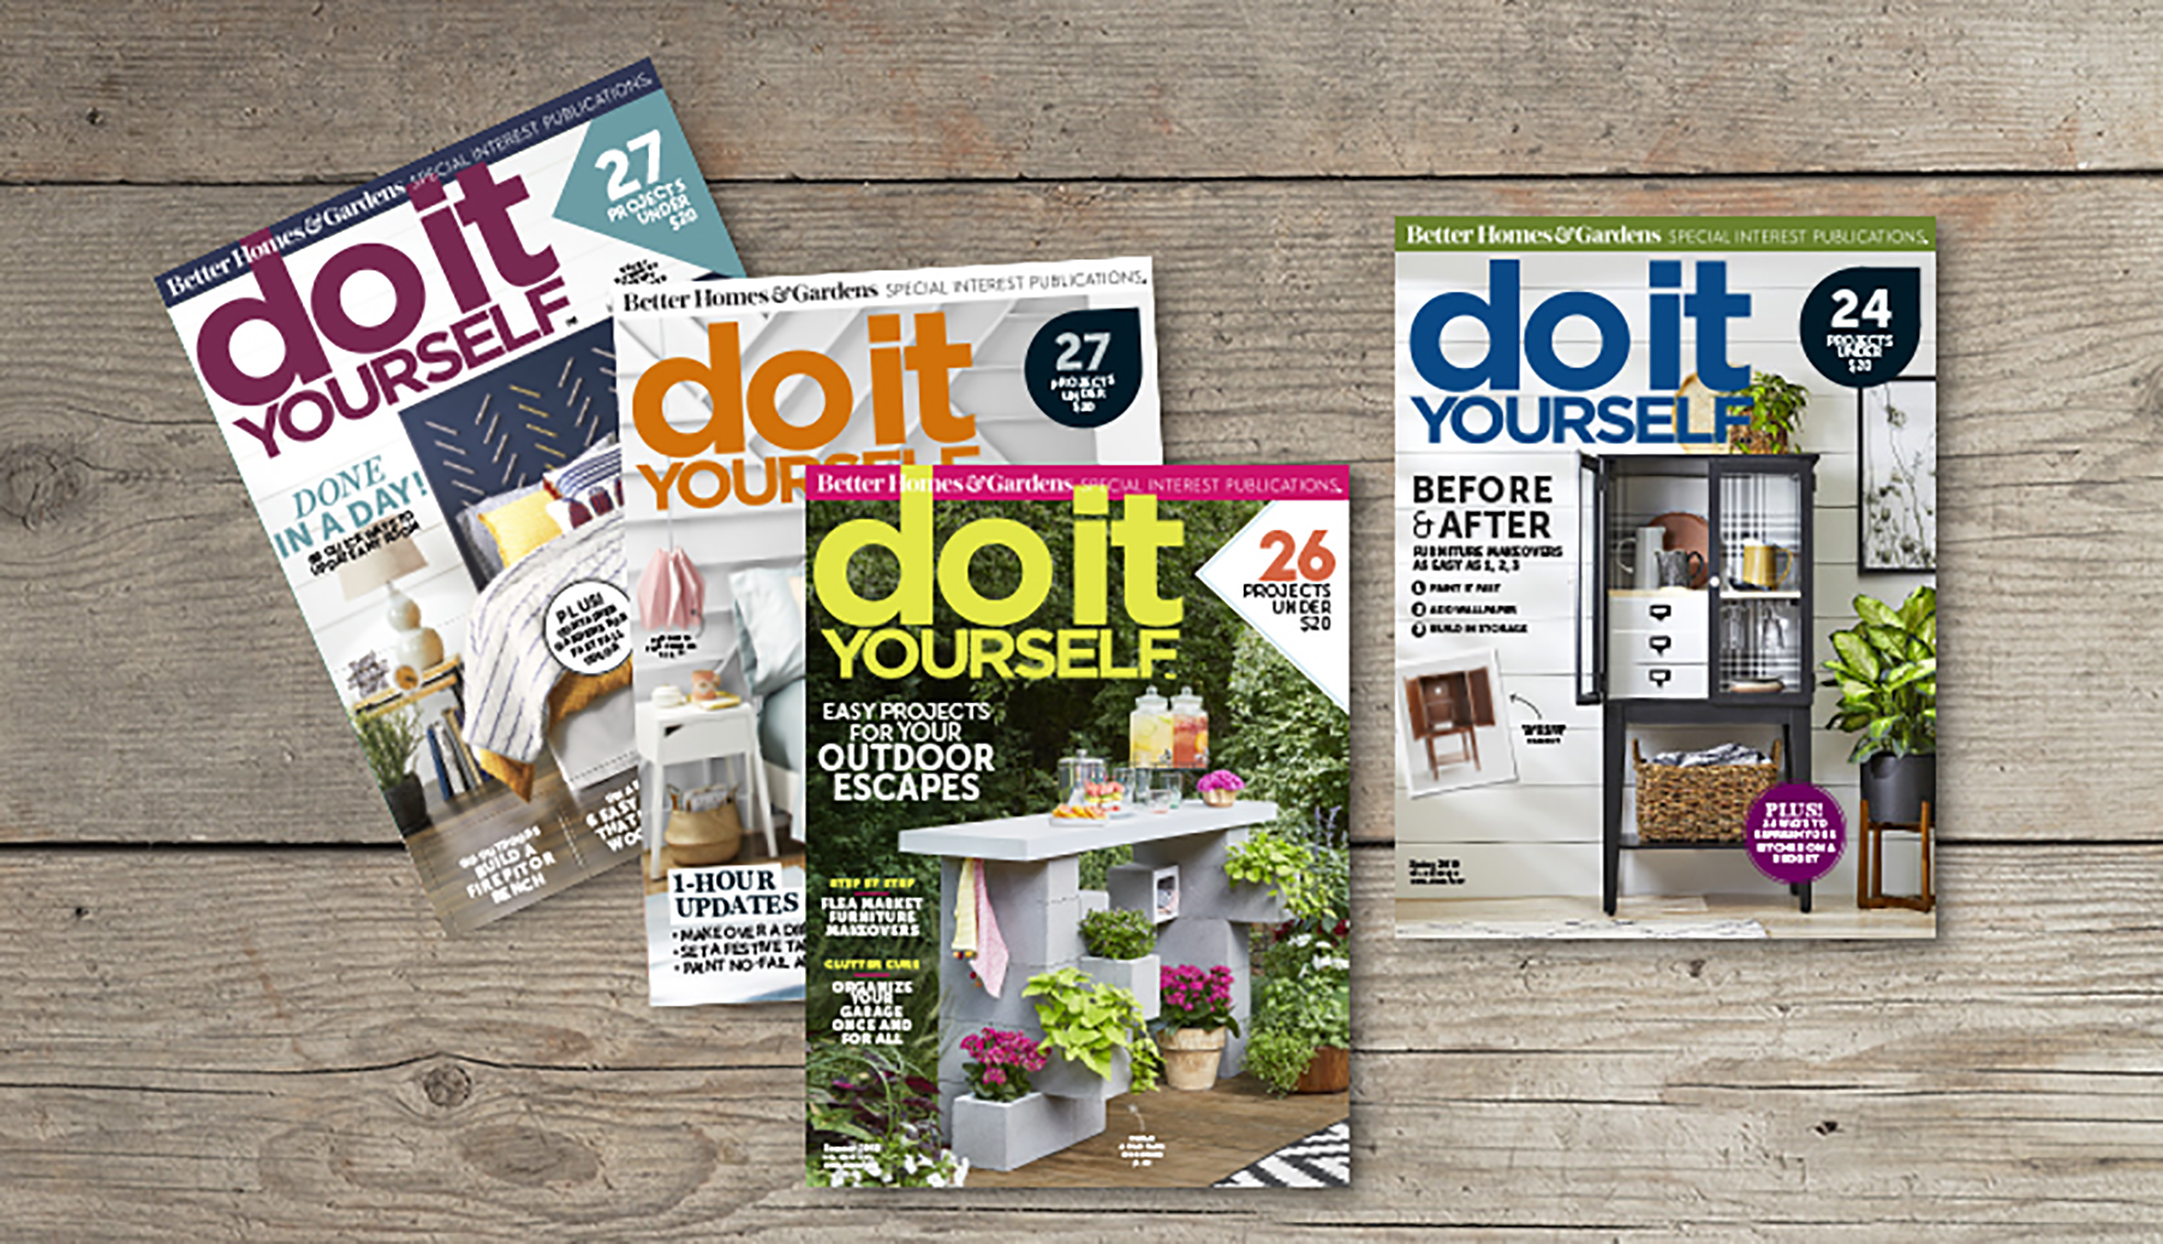 Do It Yourself magazines